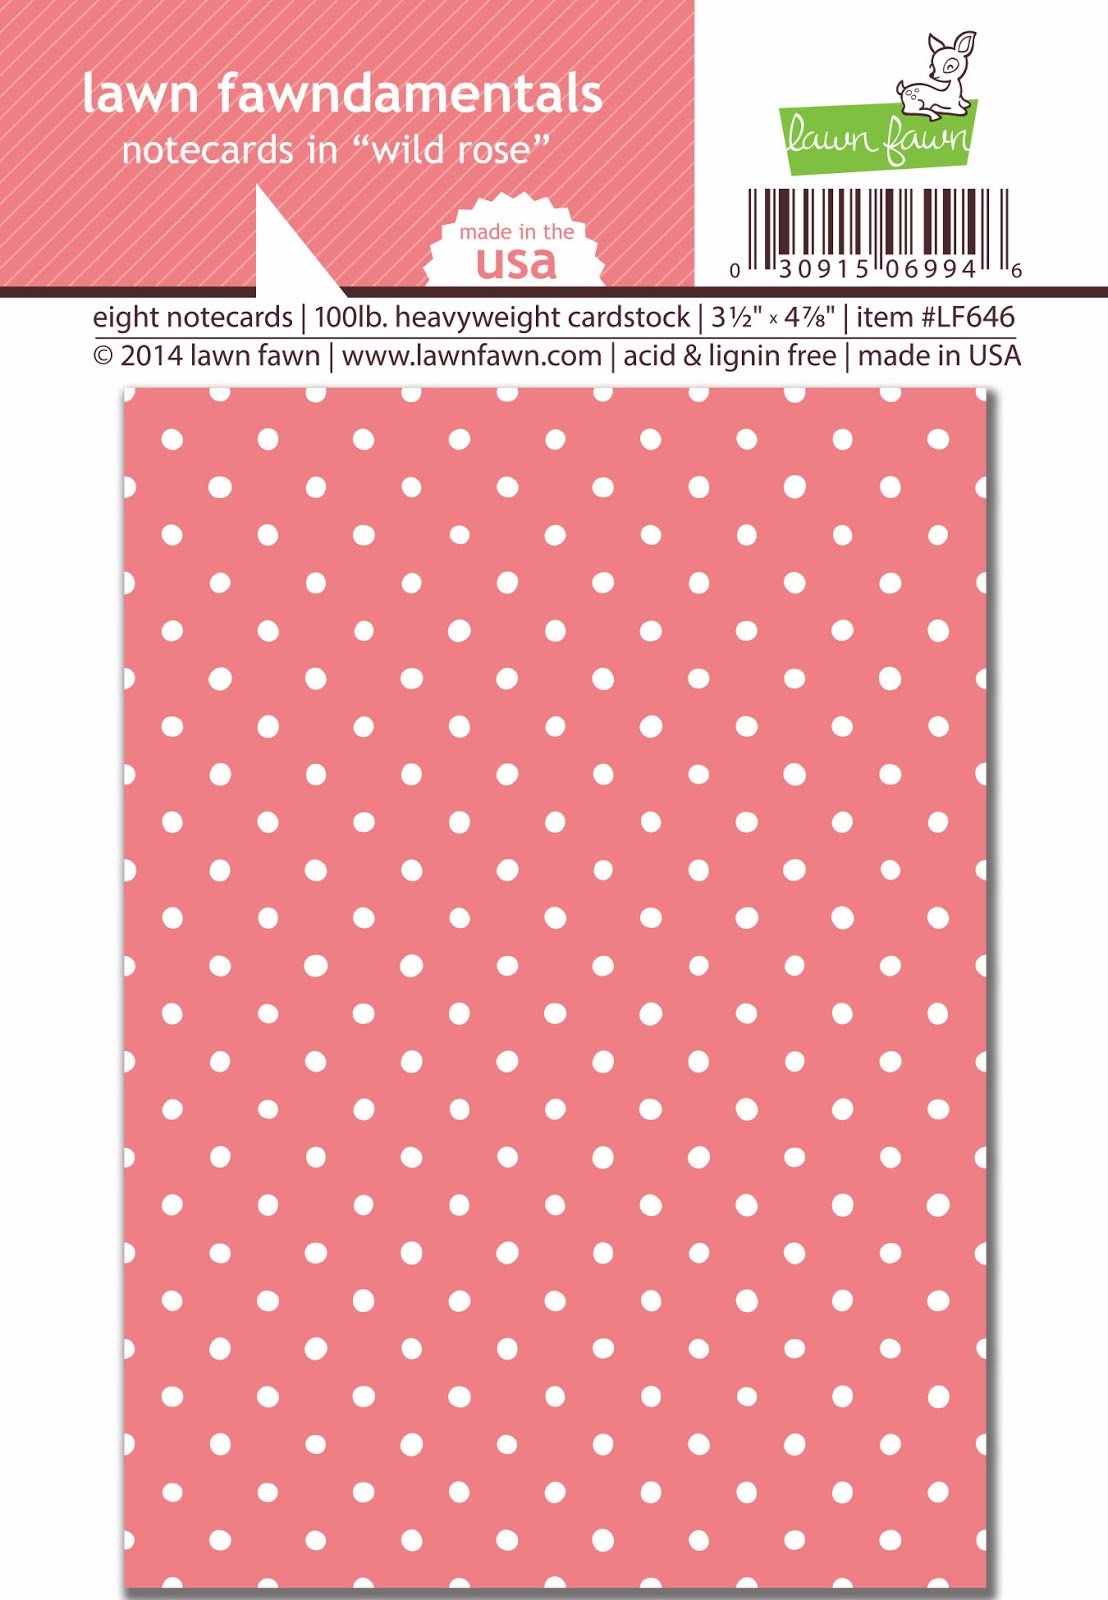 http://www.lawnfawn.com/collections/new-products/products/wild-rose-notecards